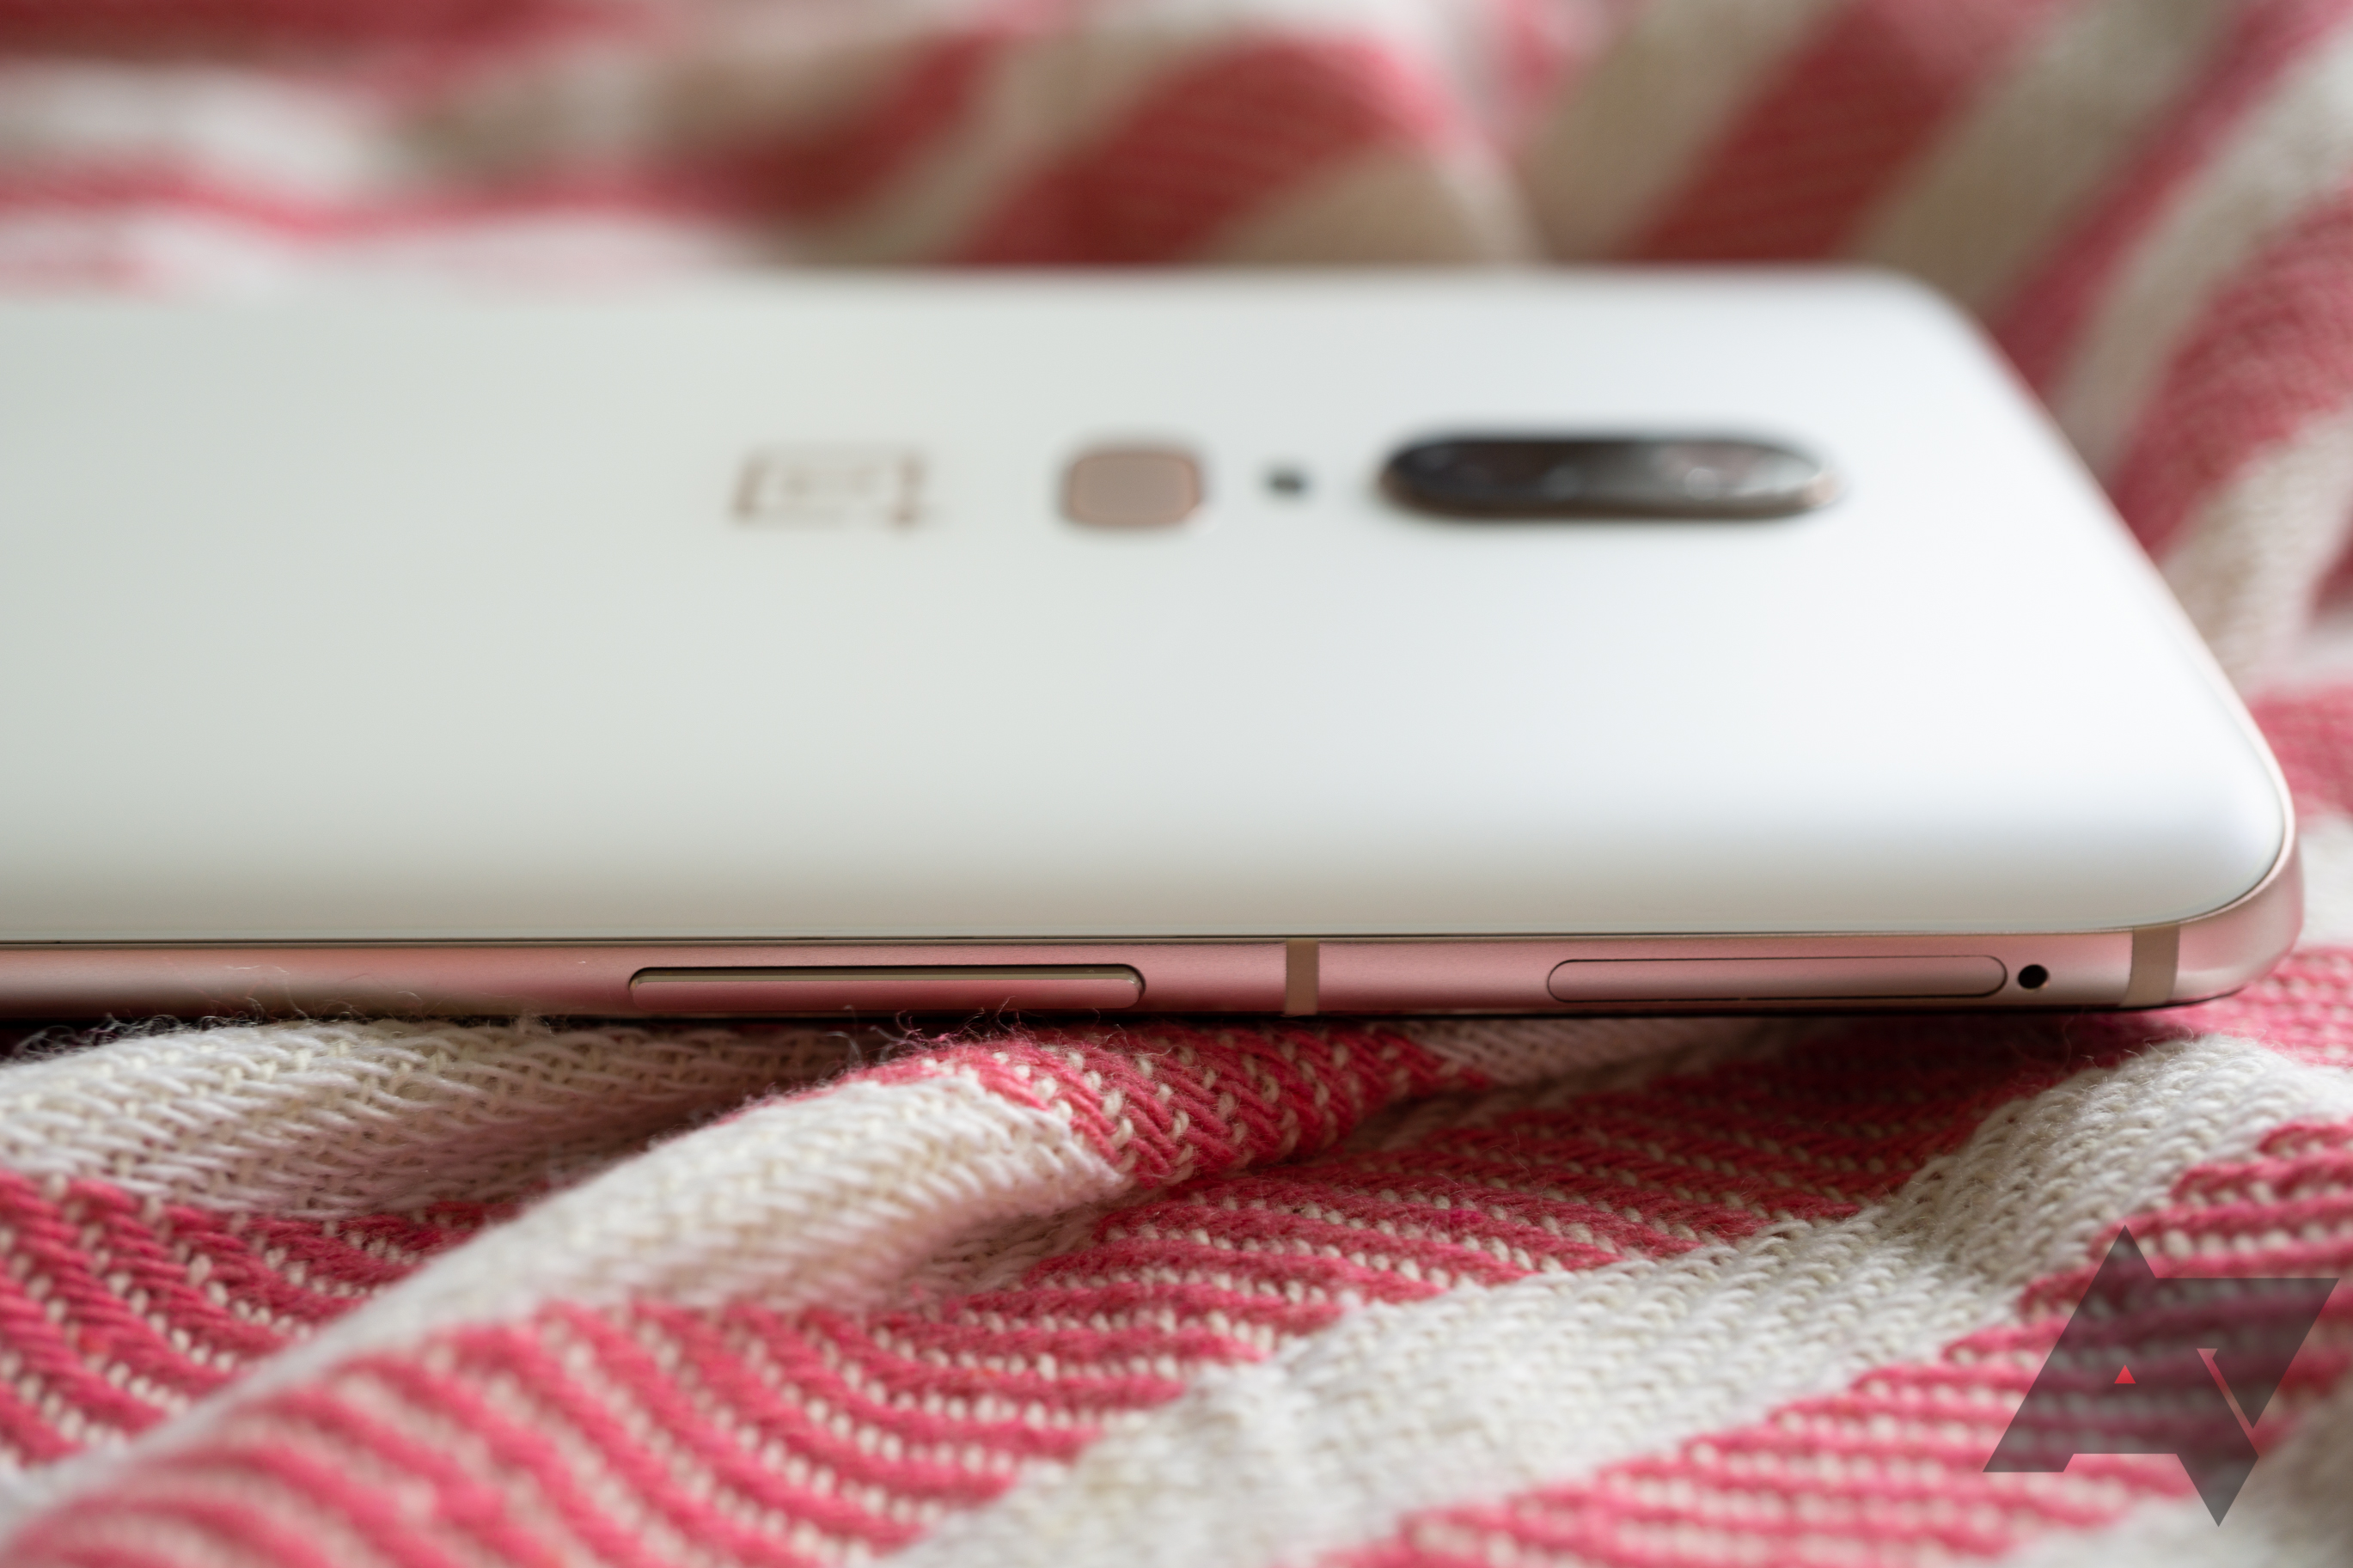 The OnePlus 6 Silk White edition is coming tomorrow for $579